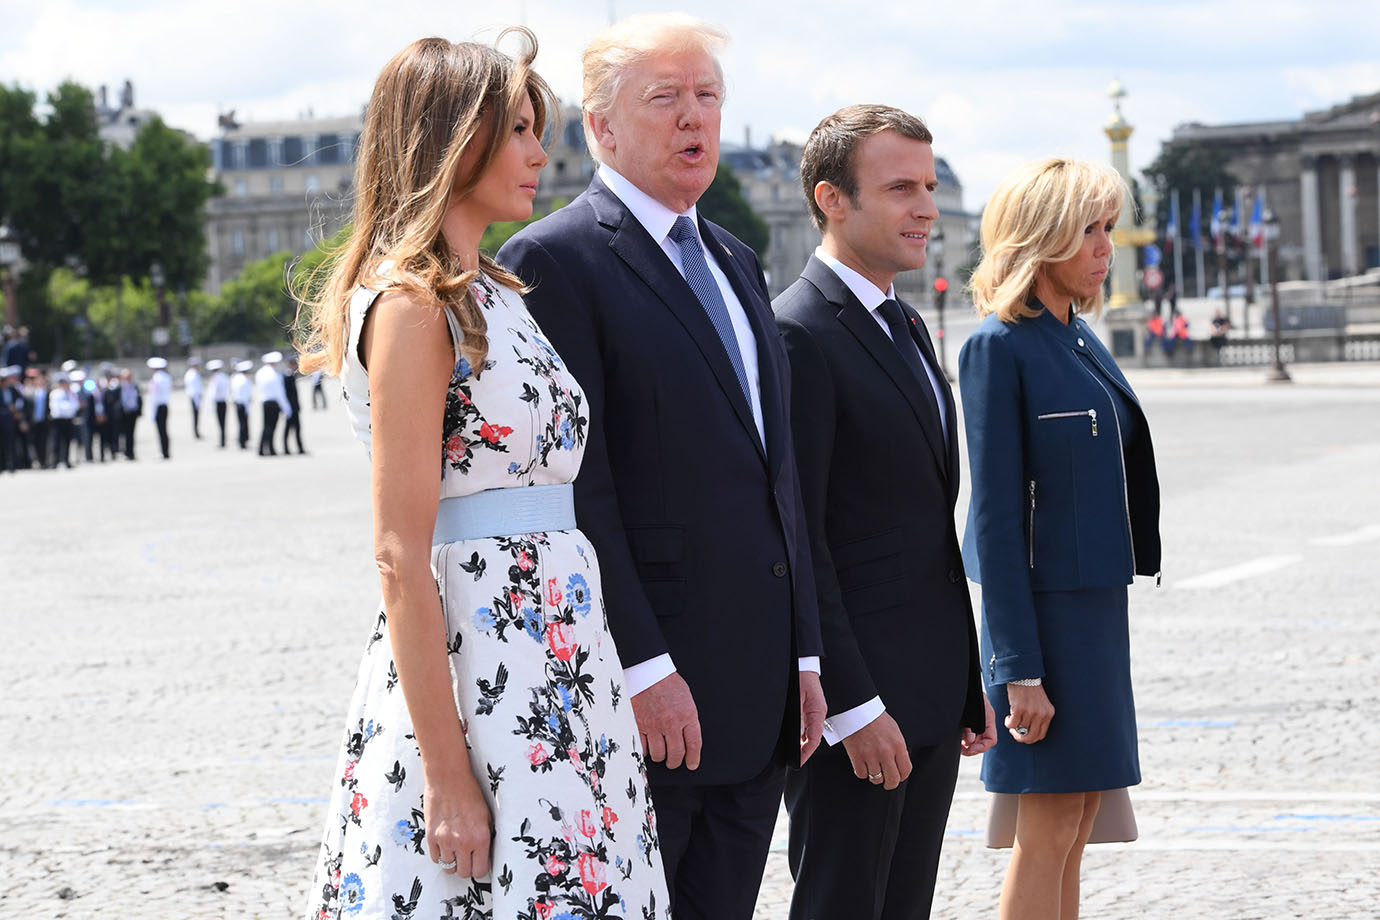 French President Emmanuel Macron (2nd R) and his wife Brigitte Macron (R) stand with US President Do